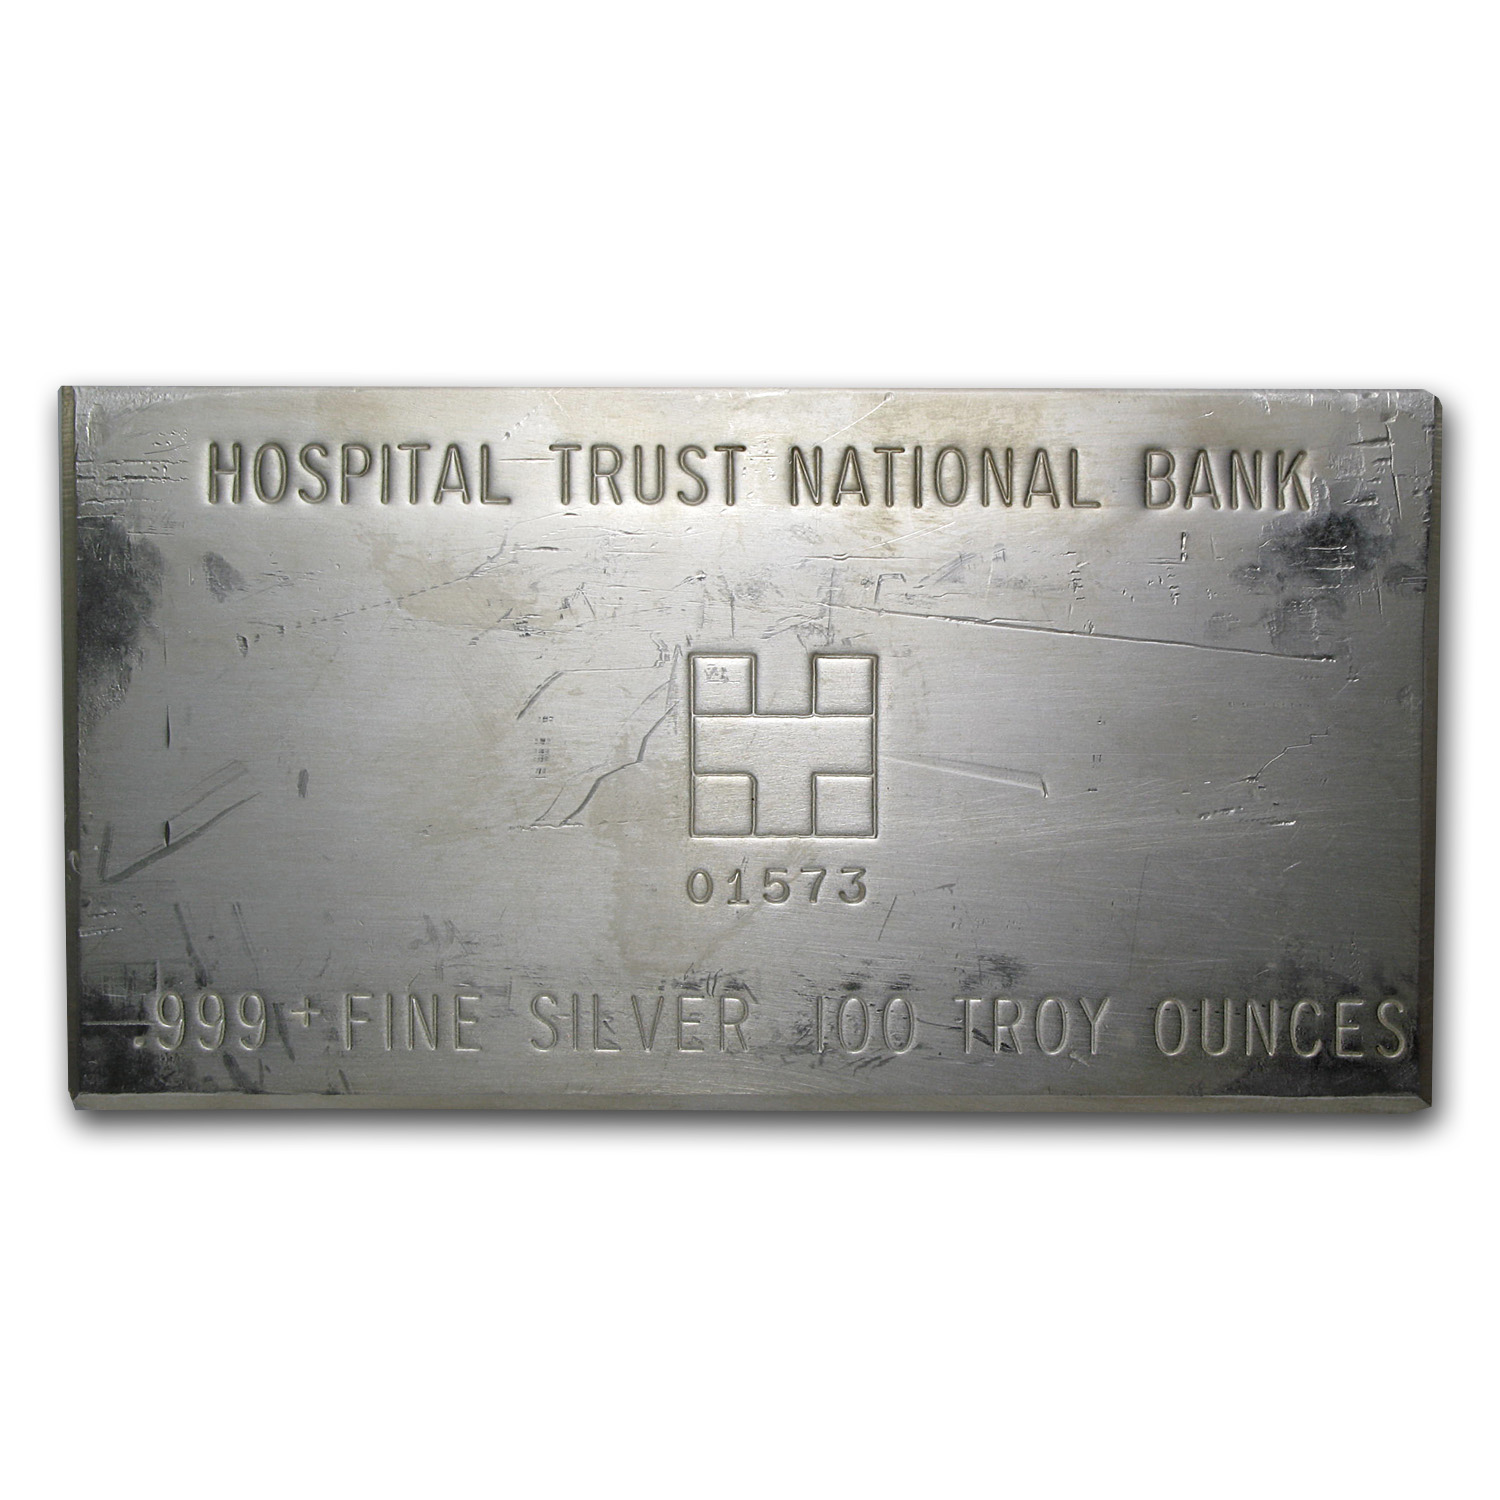 100 oz Silver Bar - Hospital Trust National Bank (Struck)